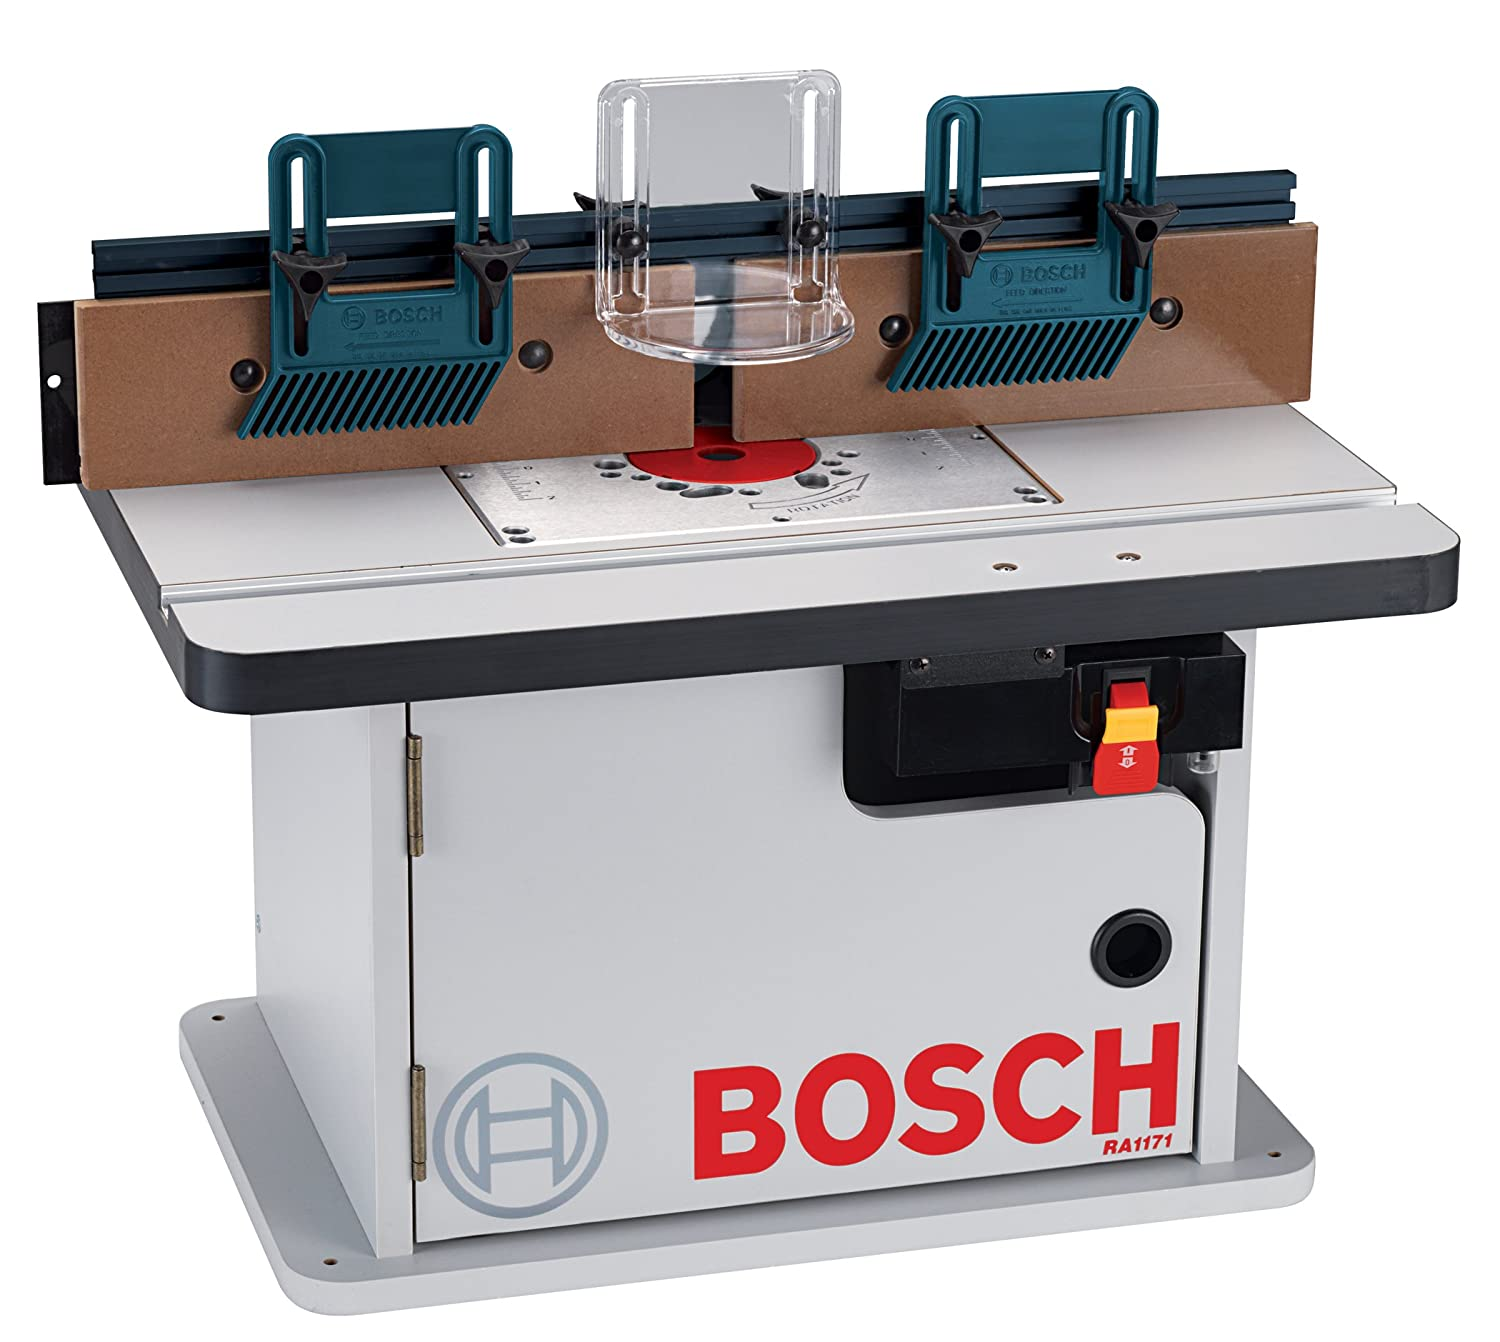 Bosch ra1171 cabinet style router table power router accessories bosch ra1171 cabinet style router table power router accessories amazon keyboard keysfo